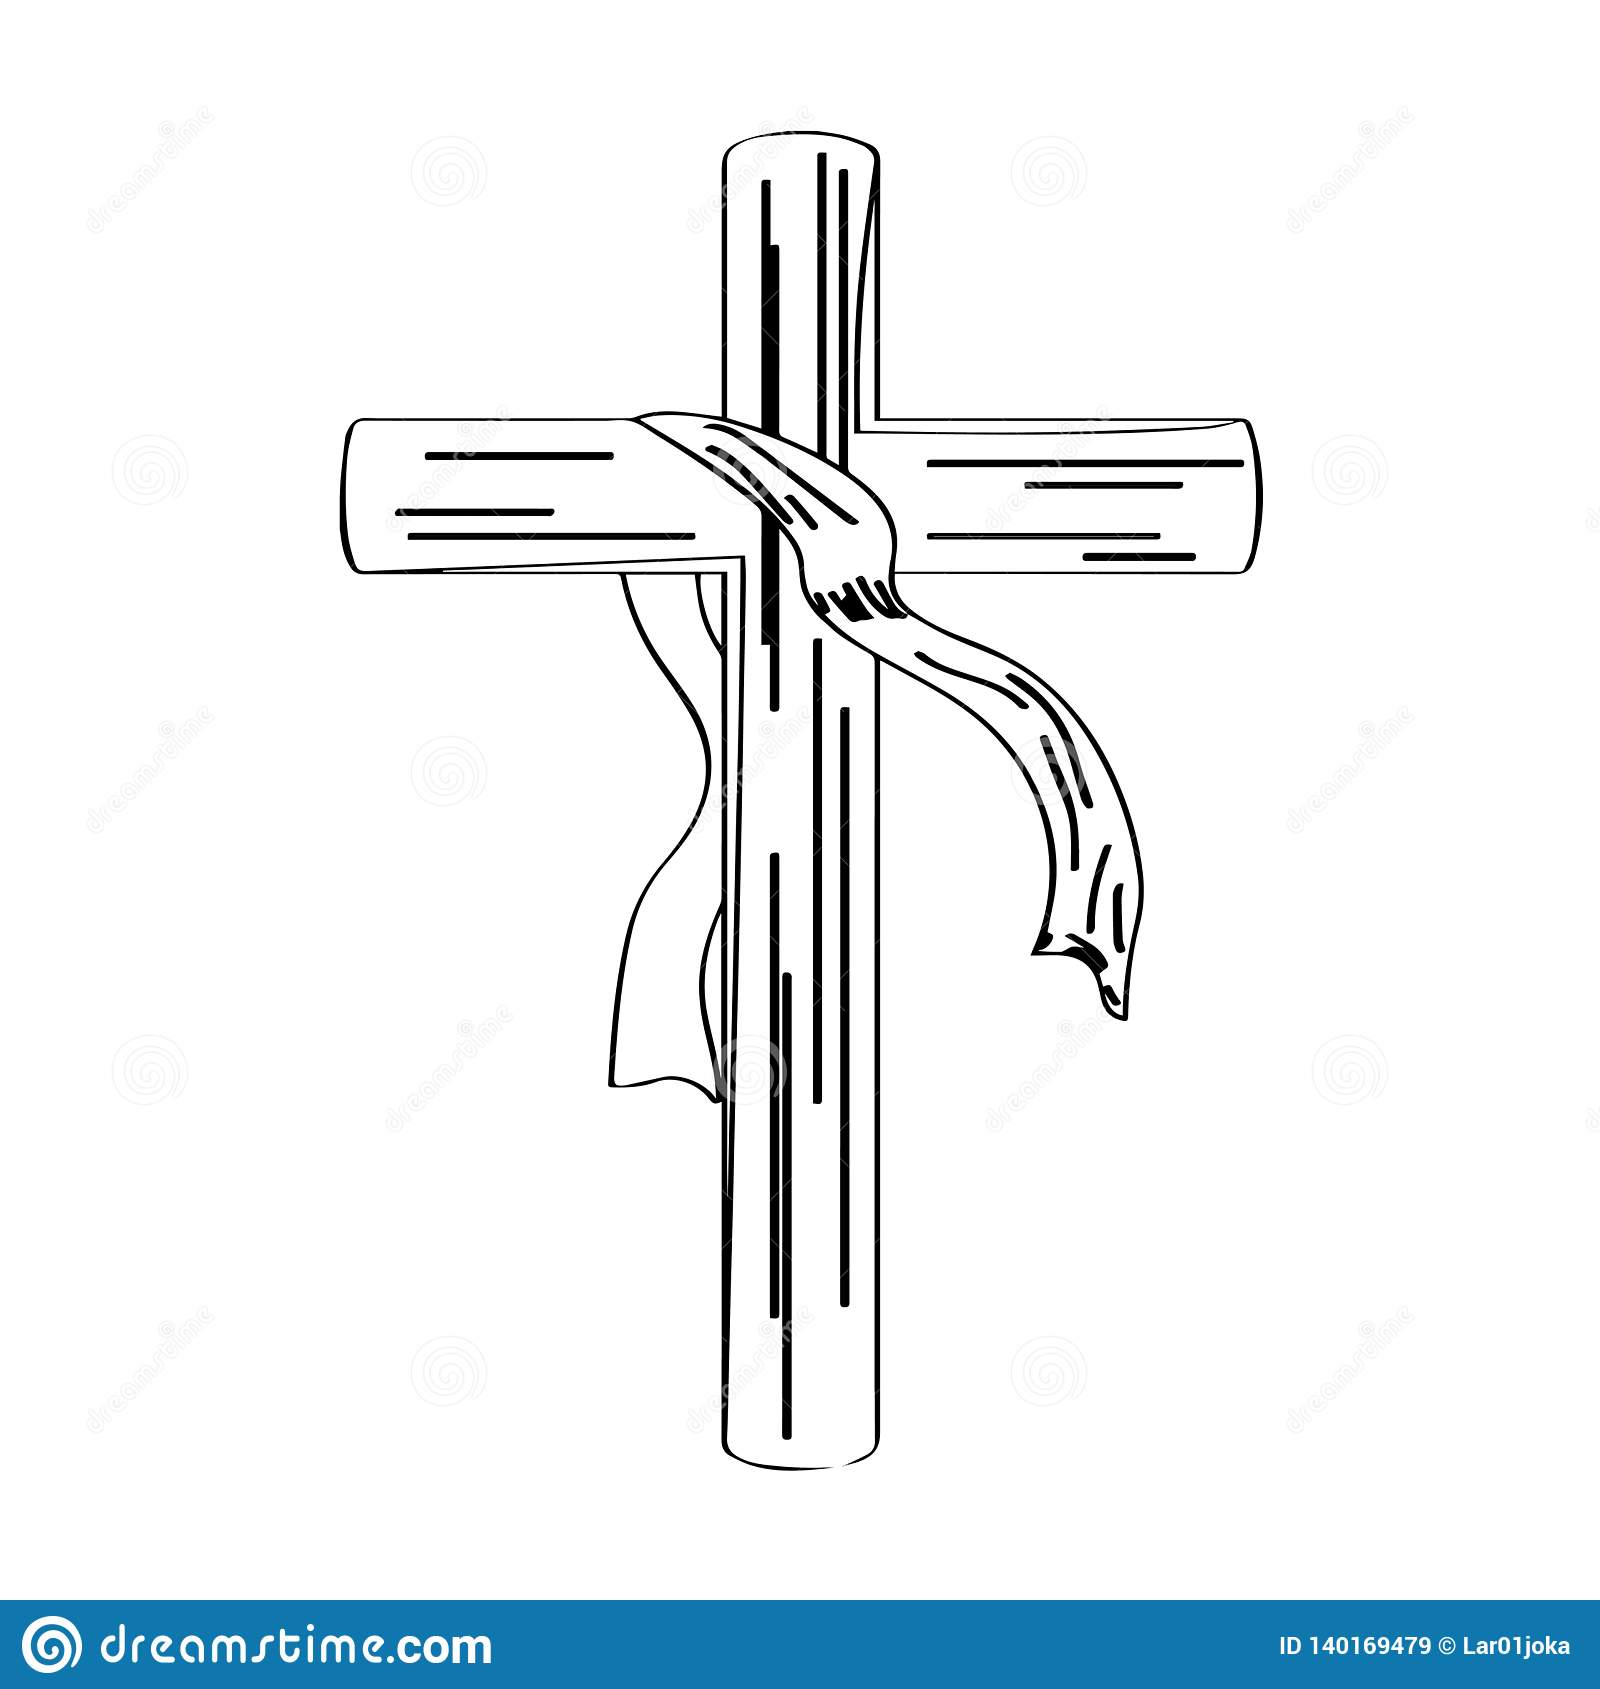 Outline Of A Cross With A Cloth Stock Vector Illustration Of Religion Church 140169479 Free download and use them in in your design related work. https www dreamstime com outline cross cloth outline cross cloth holy week vector illustration design image140169479